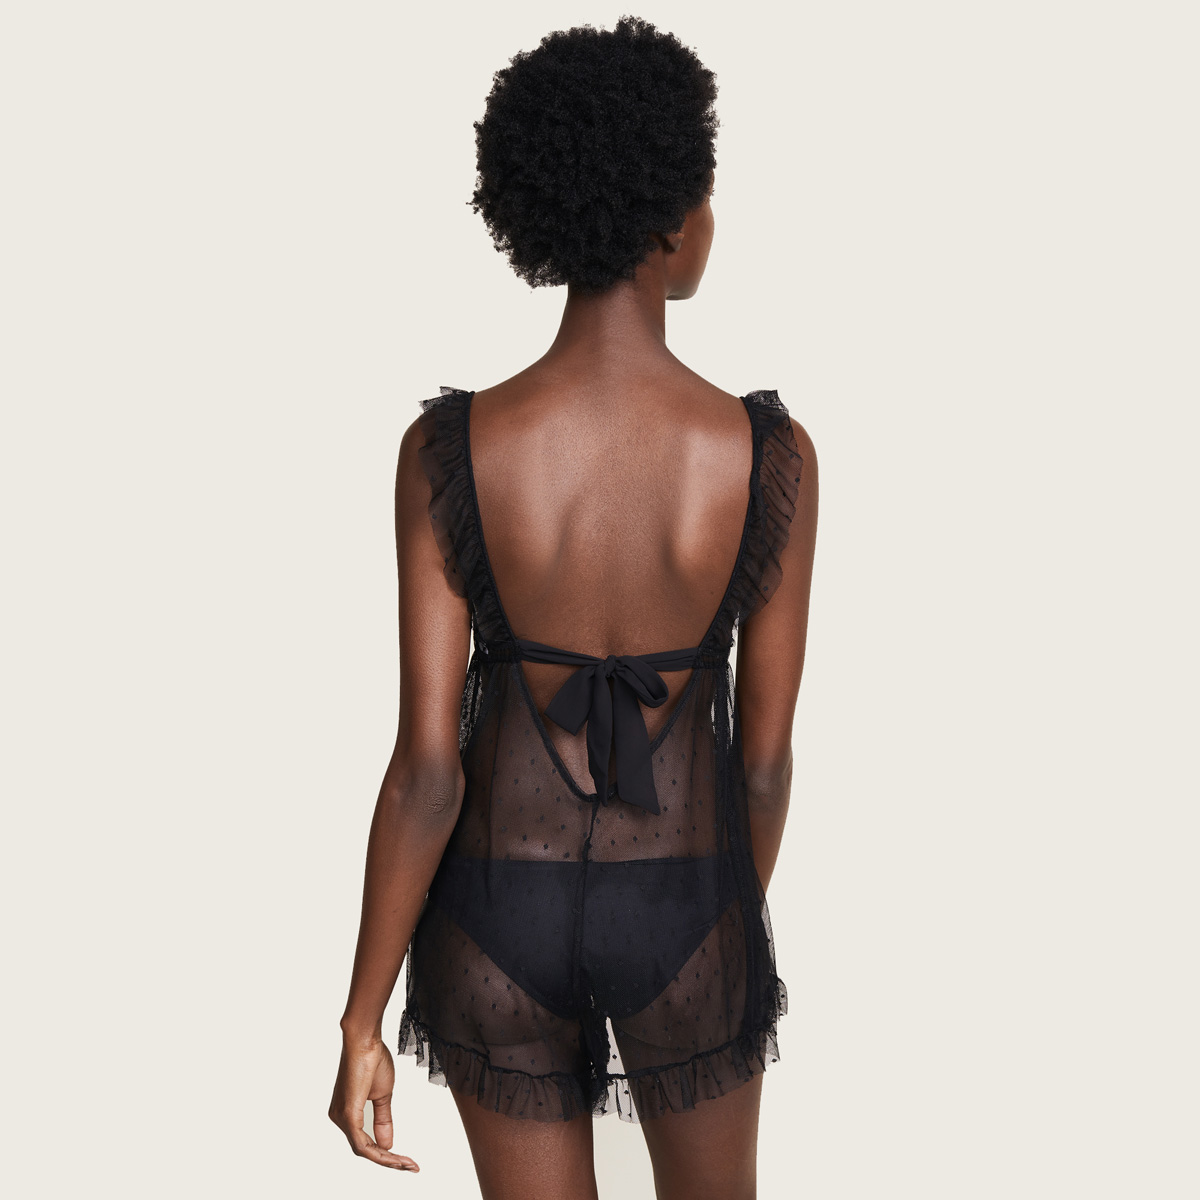 A model (shown back view) wears the black lace Cou Cou Lola tie-back teddy by Only Hearts. It is a sheer polka dot lace teddy with ruffles on the straps and around the bottom of the legs. A princess seam under the bust provides shape and support.